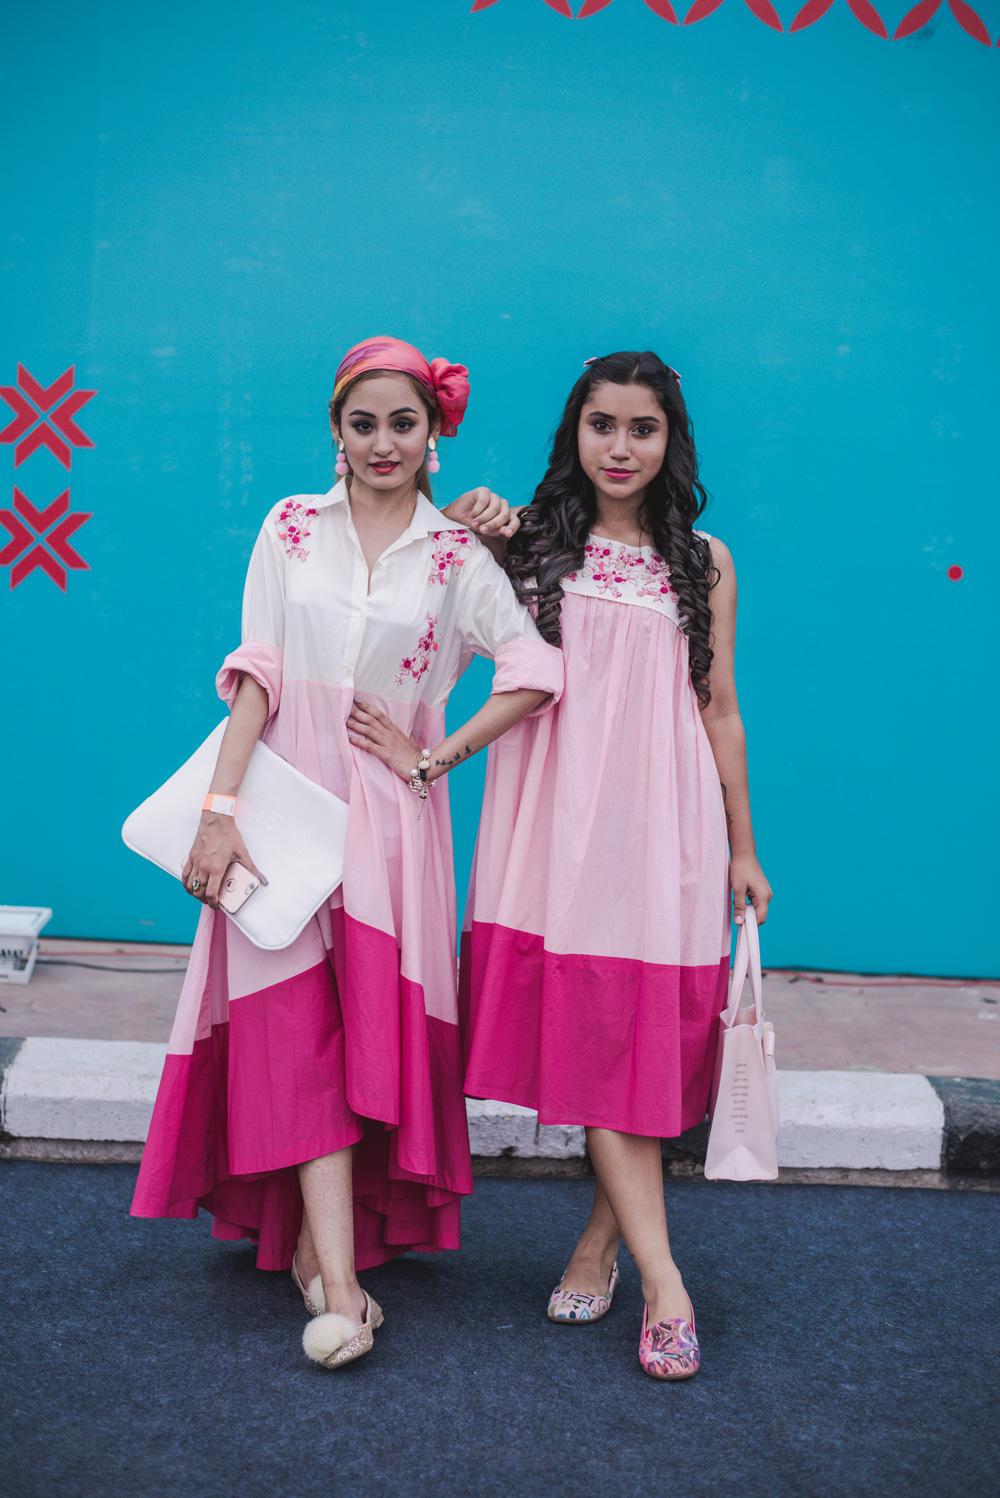 Bloggers Kasha Chauhan and Vasudha Dembla Street Style Amazon India Fashion Week Spring Summer 2018; Photo by The Co Lab